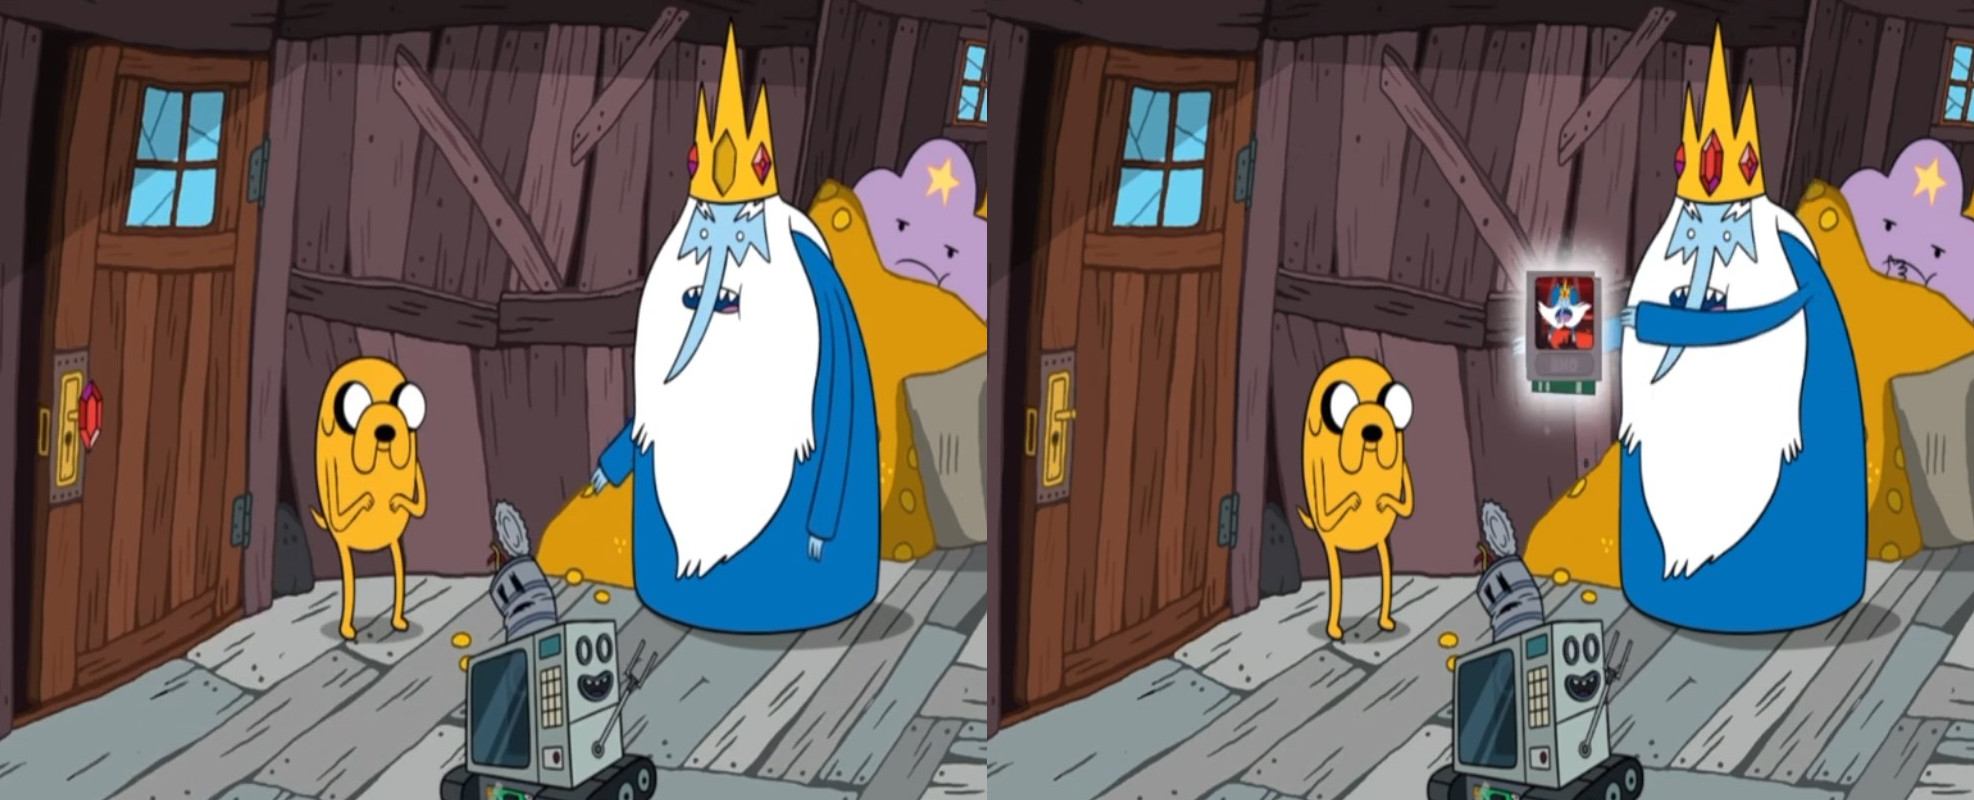 Combination puzzle to unlock the mini-game featuring the Ice King.